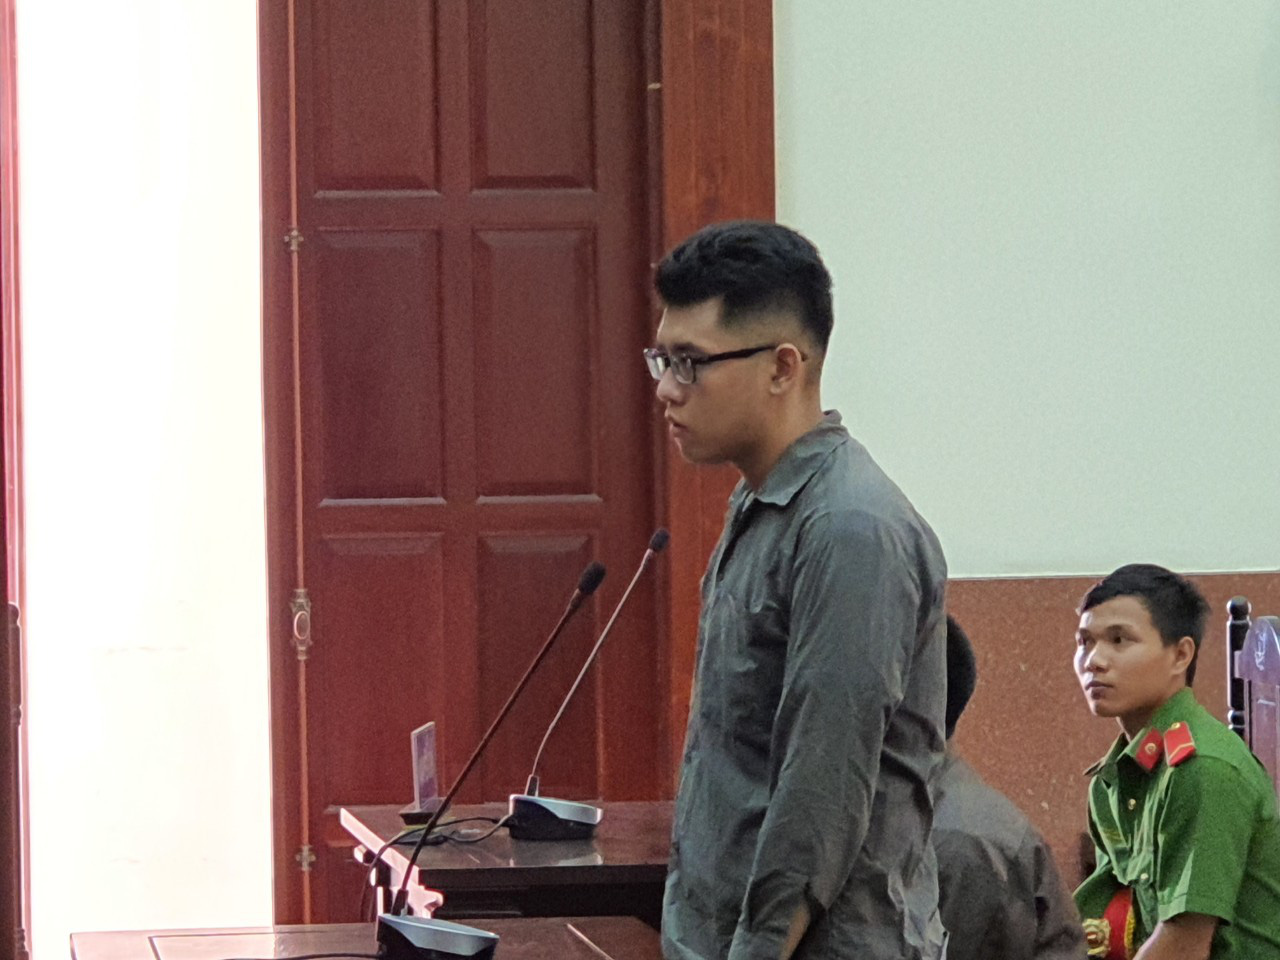 Vietnamese ride-hailing driver sentenced to 20 years in jail for transporting drugs